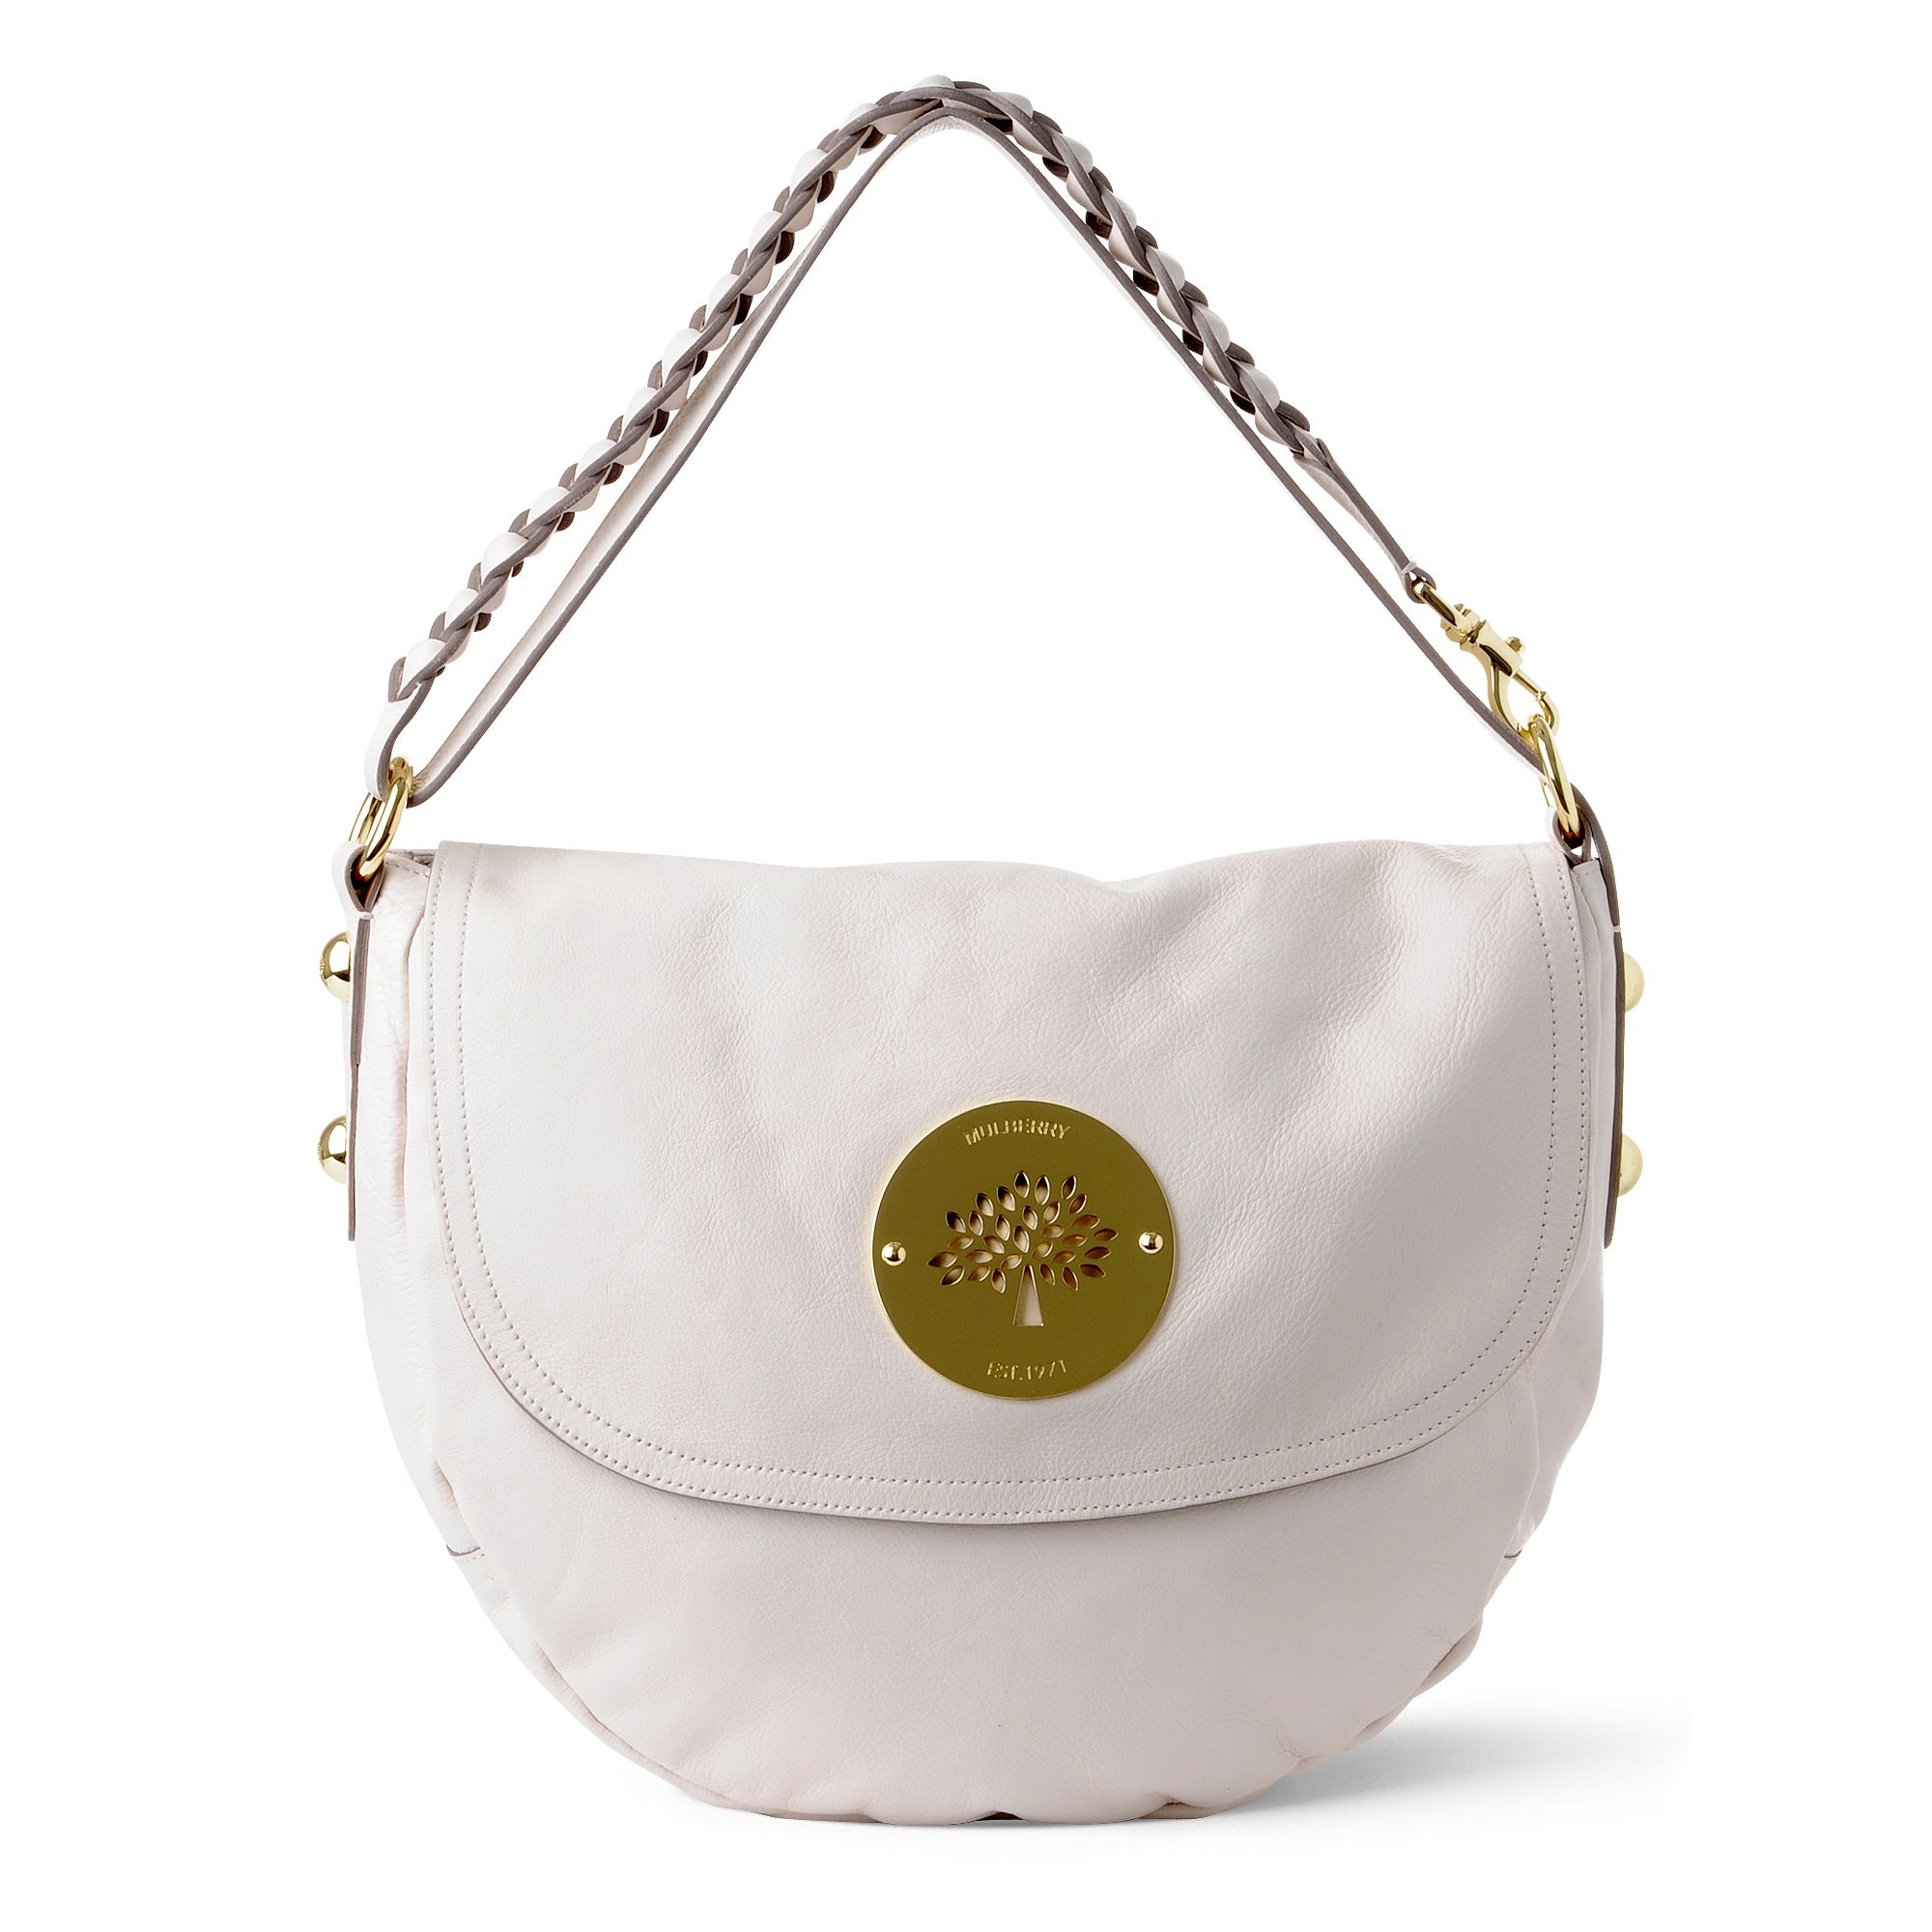 5f44906cf934 real mulberry daria medium hobo bag 0bd12 8d6b9  reduced mulberry daria  satchel in white lyst 16068 3d590